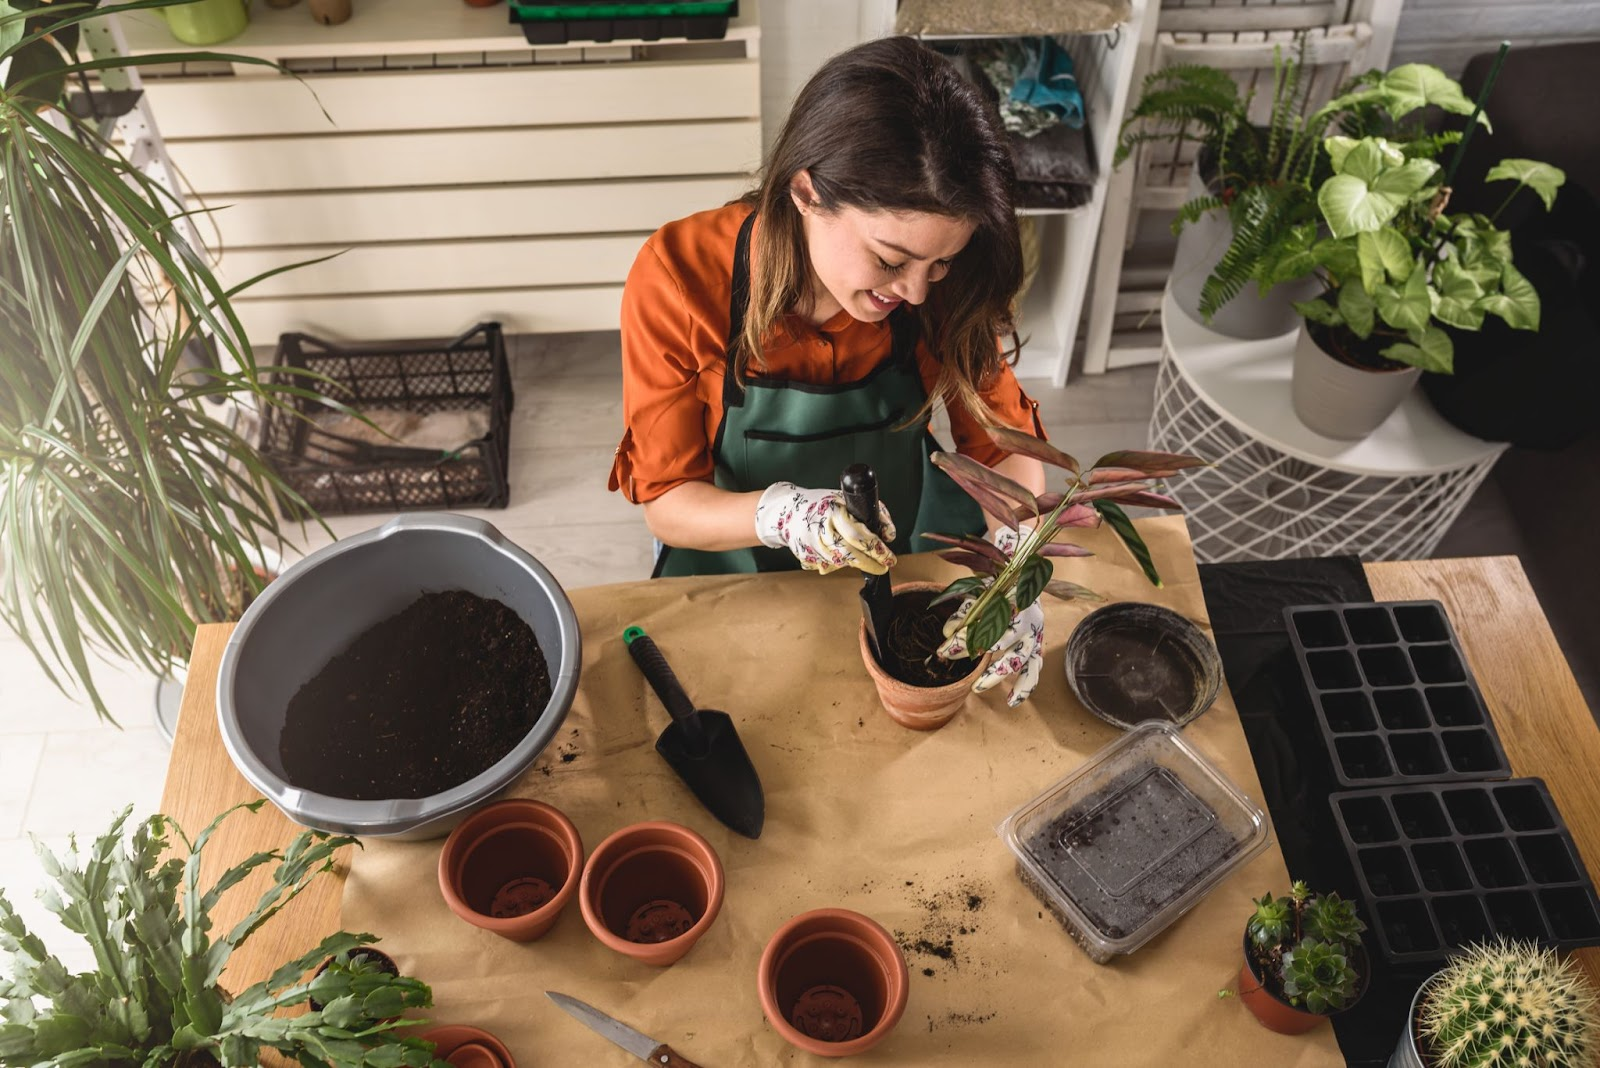 Image of woman practicing self care by indoor gardening.